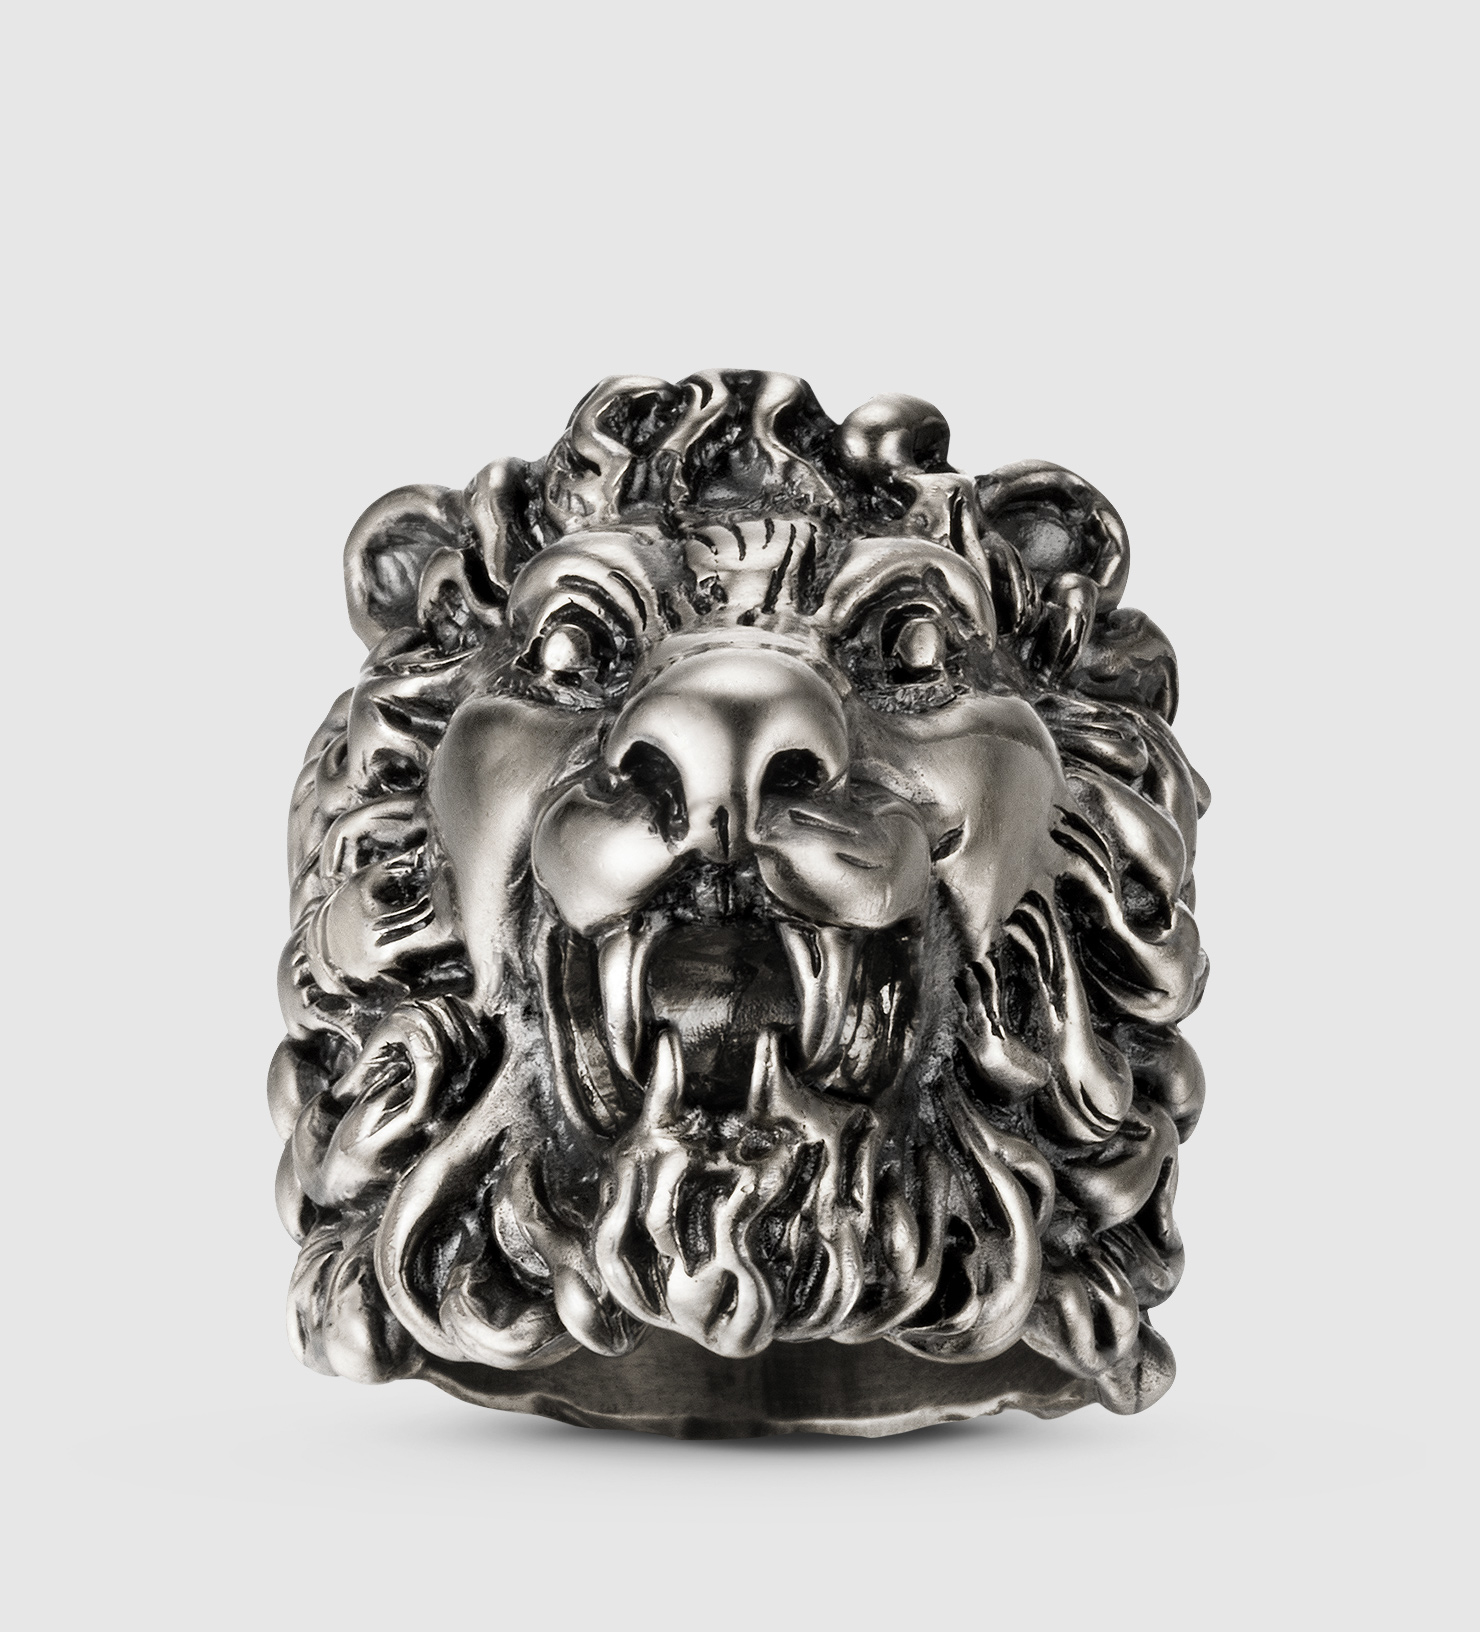 image rings antique for lion salat head black miriam loading name ring